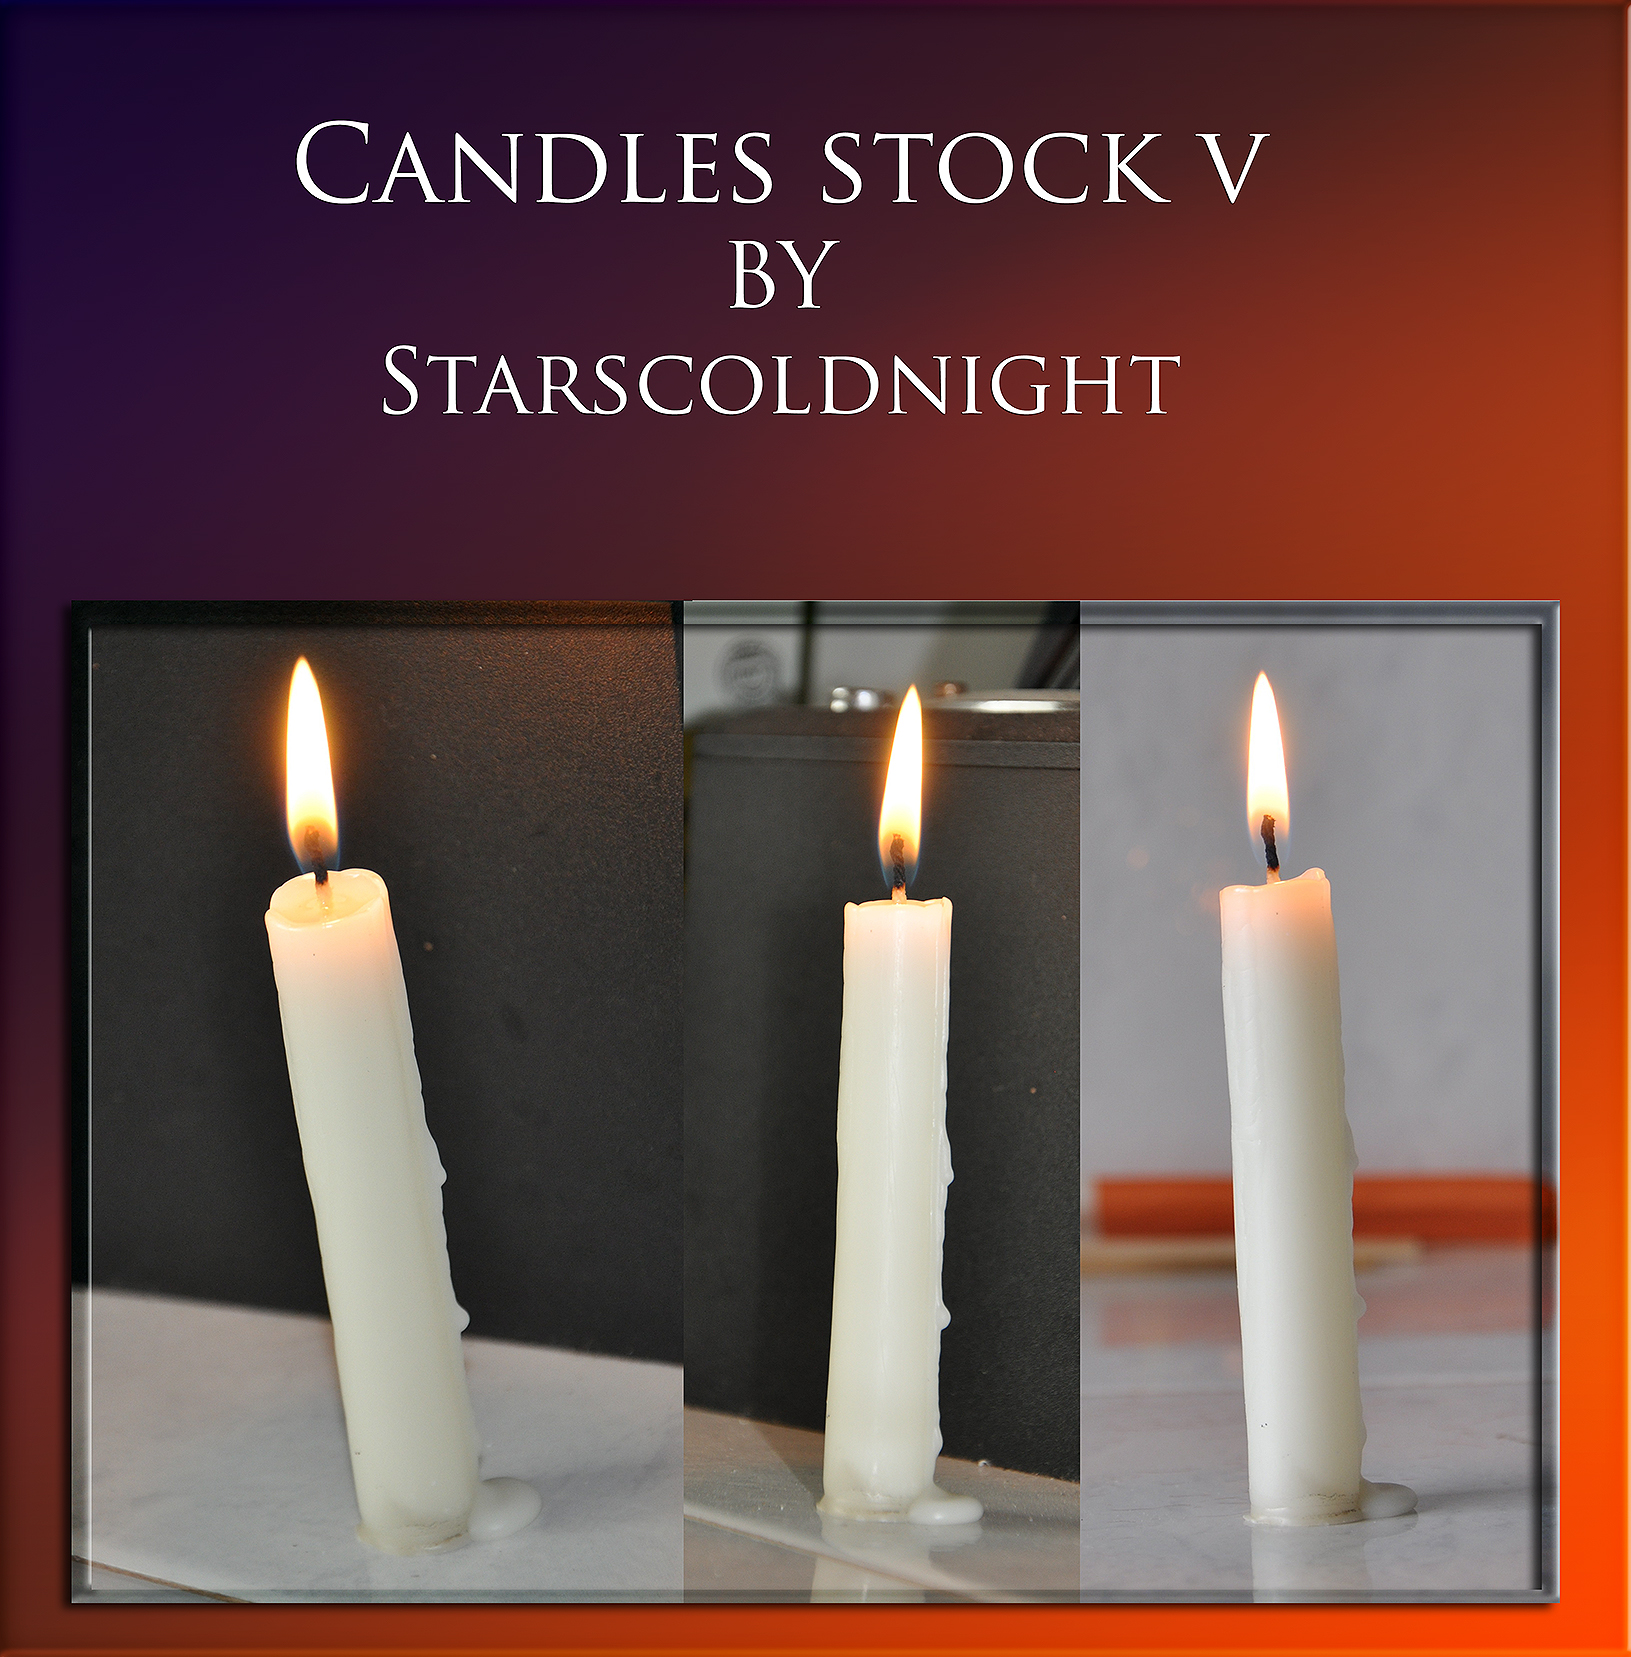 candles V by starscoldnight